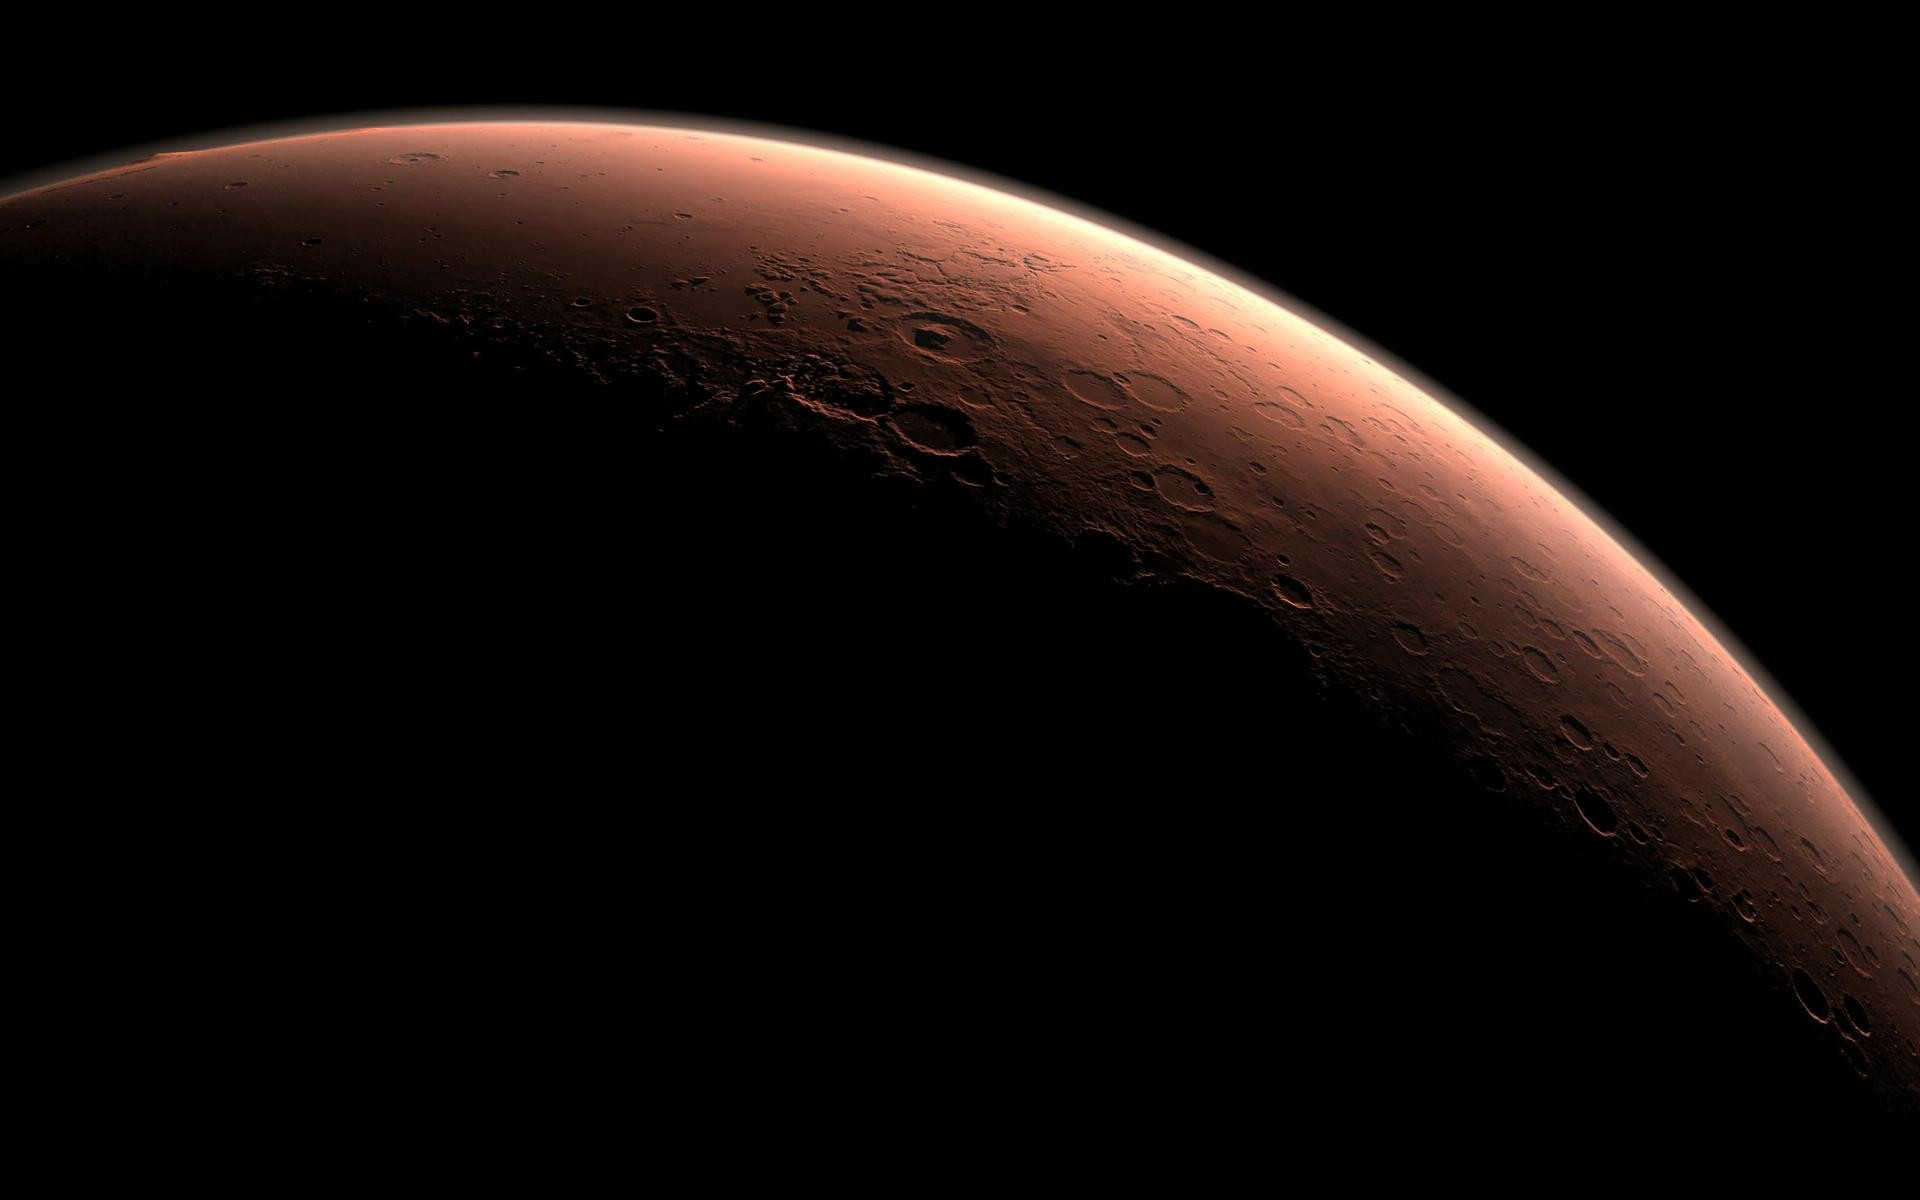 Mars wallpaper download free stunning hd wallpapers for - Mars wallpaper ...